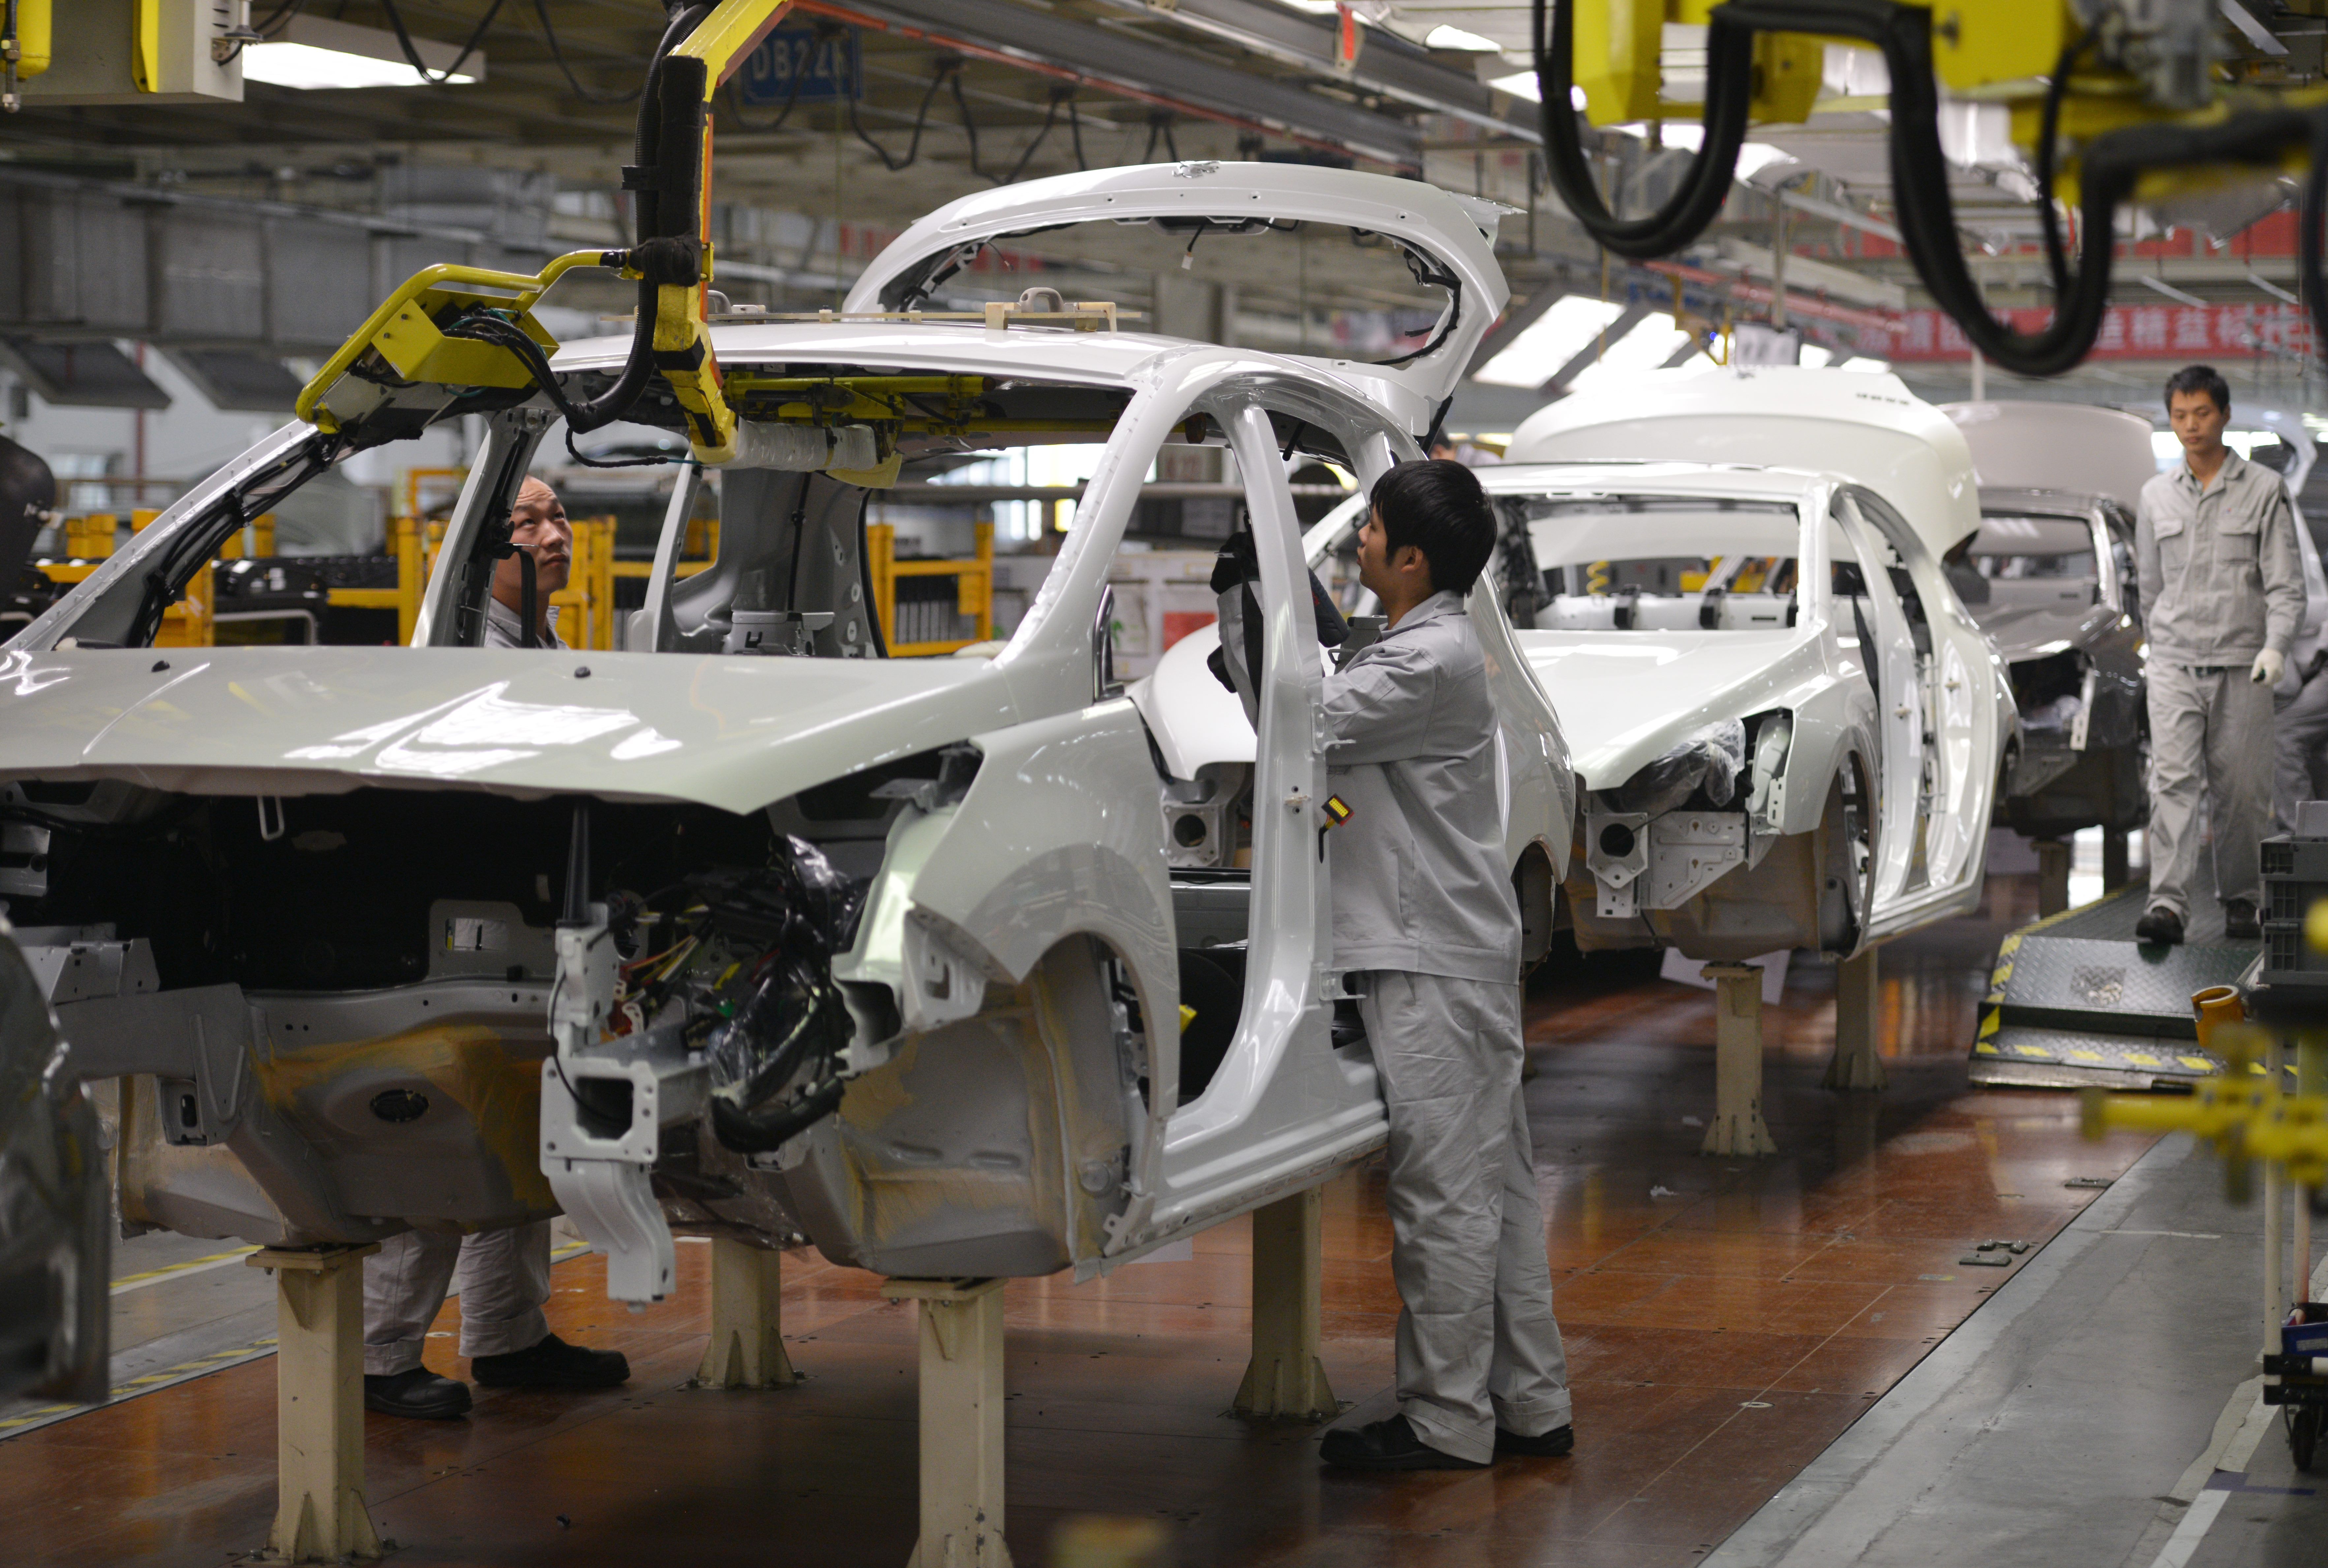 Workers on the assembly line at the Sino-French joint venture Dongfeng Peugeot-Citroën Automobile (DPCA) plant in Wuhan in China's central Hubei province, Dec. 2013.